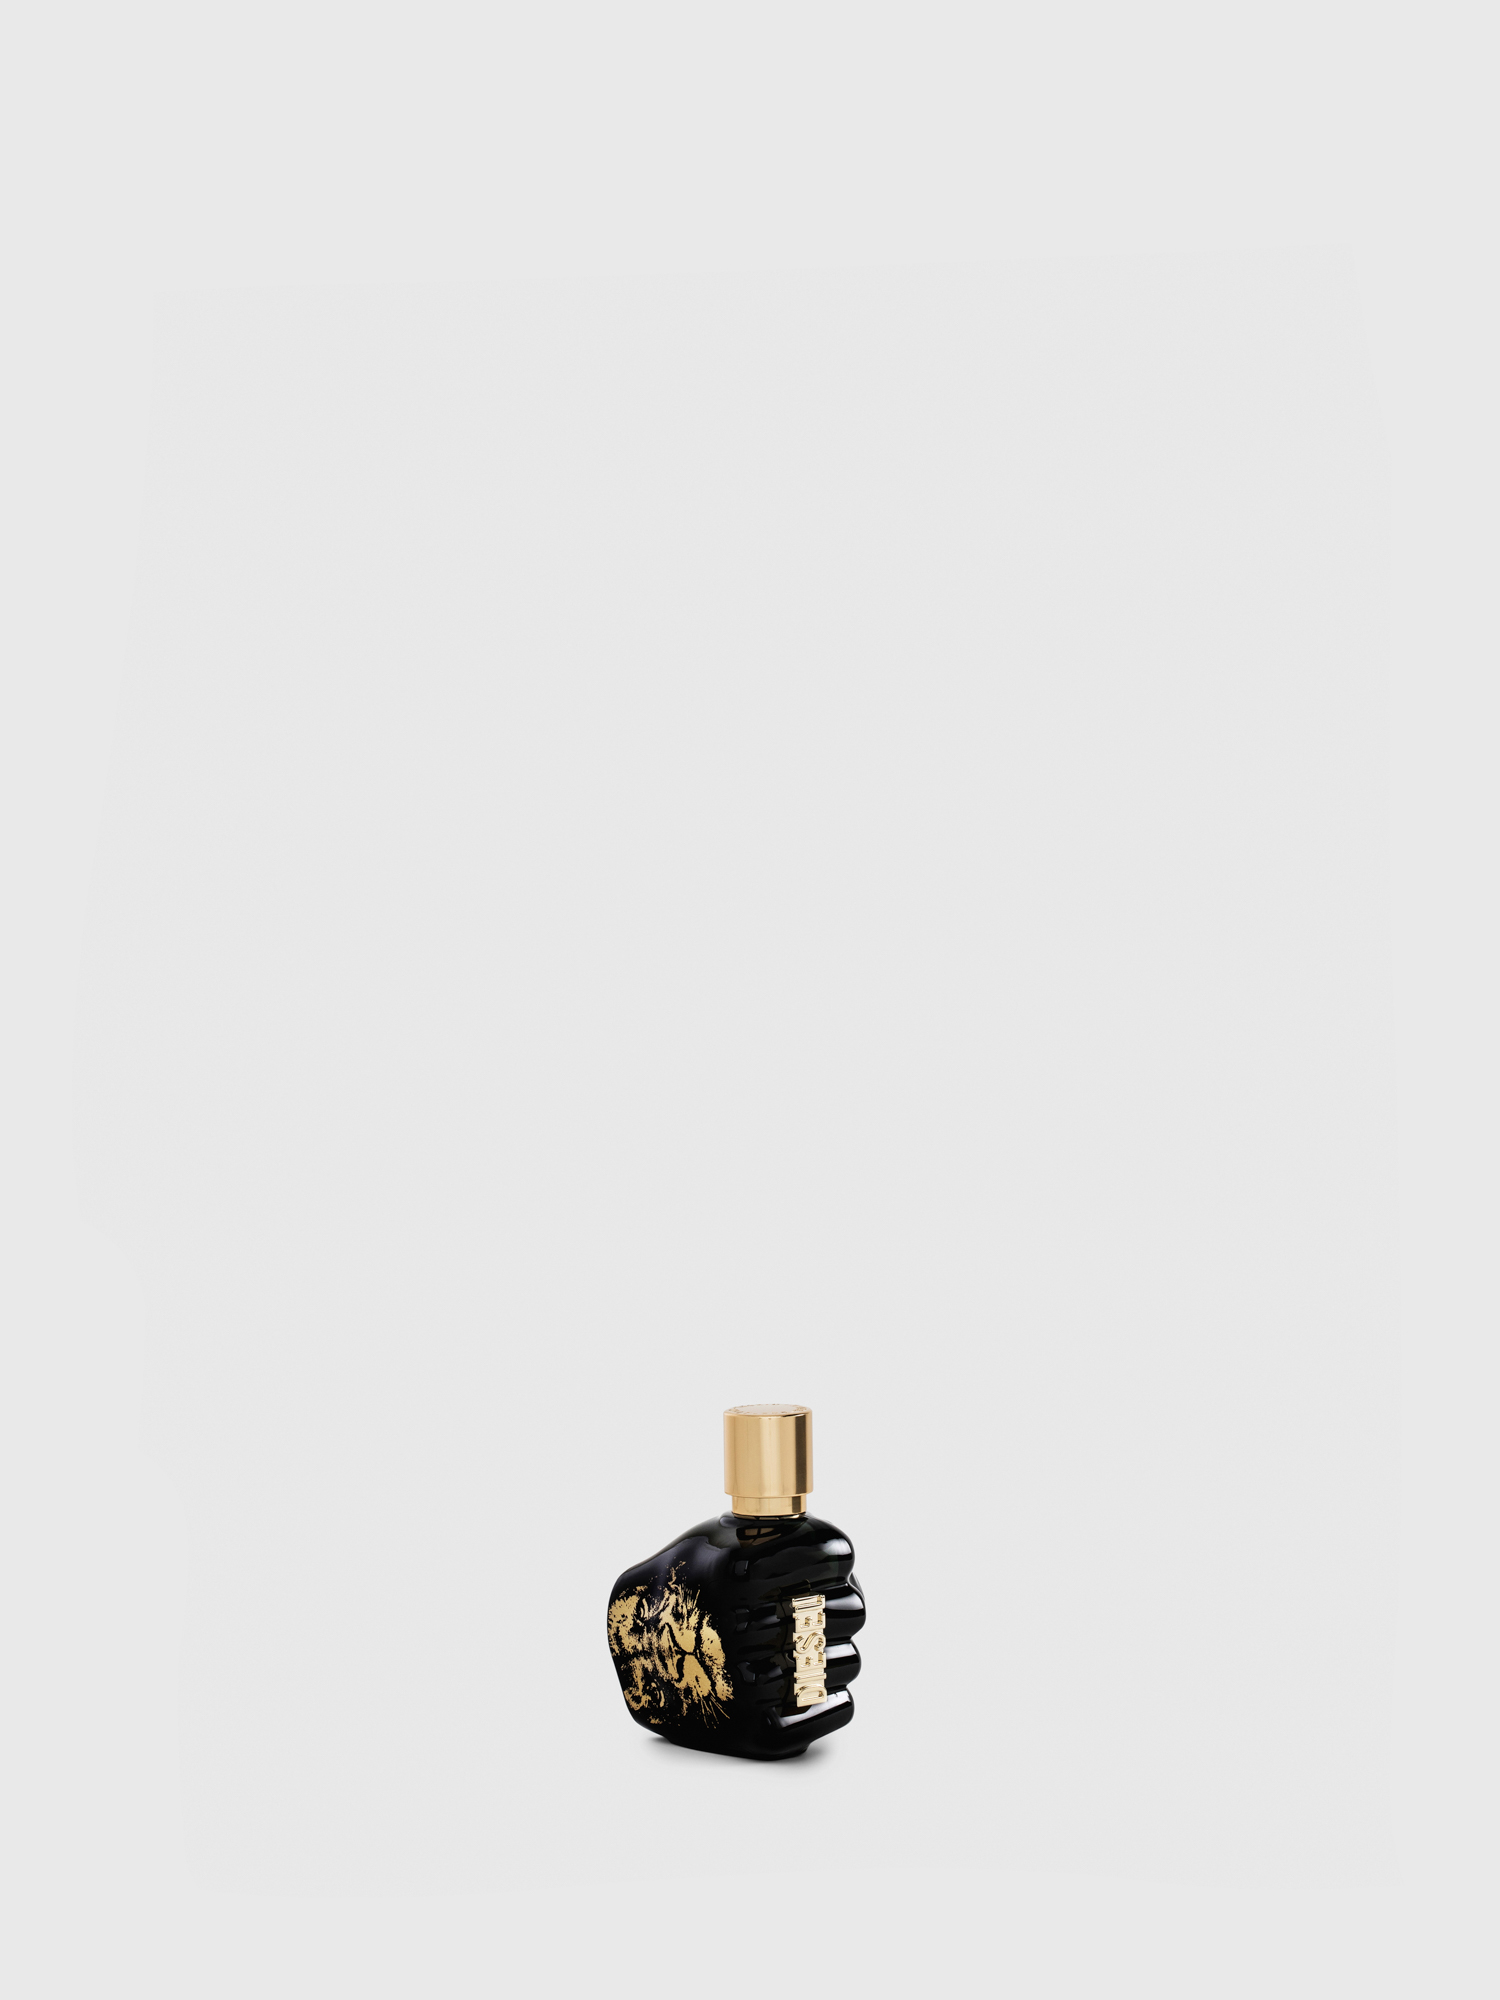 Diesel - SPIRIT OF THE BRAVE 35ML,  - Only The Brave - Image 2